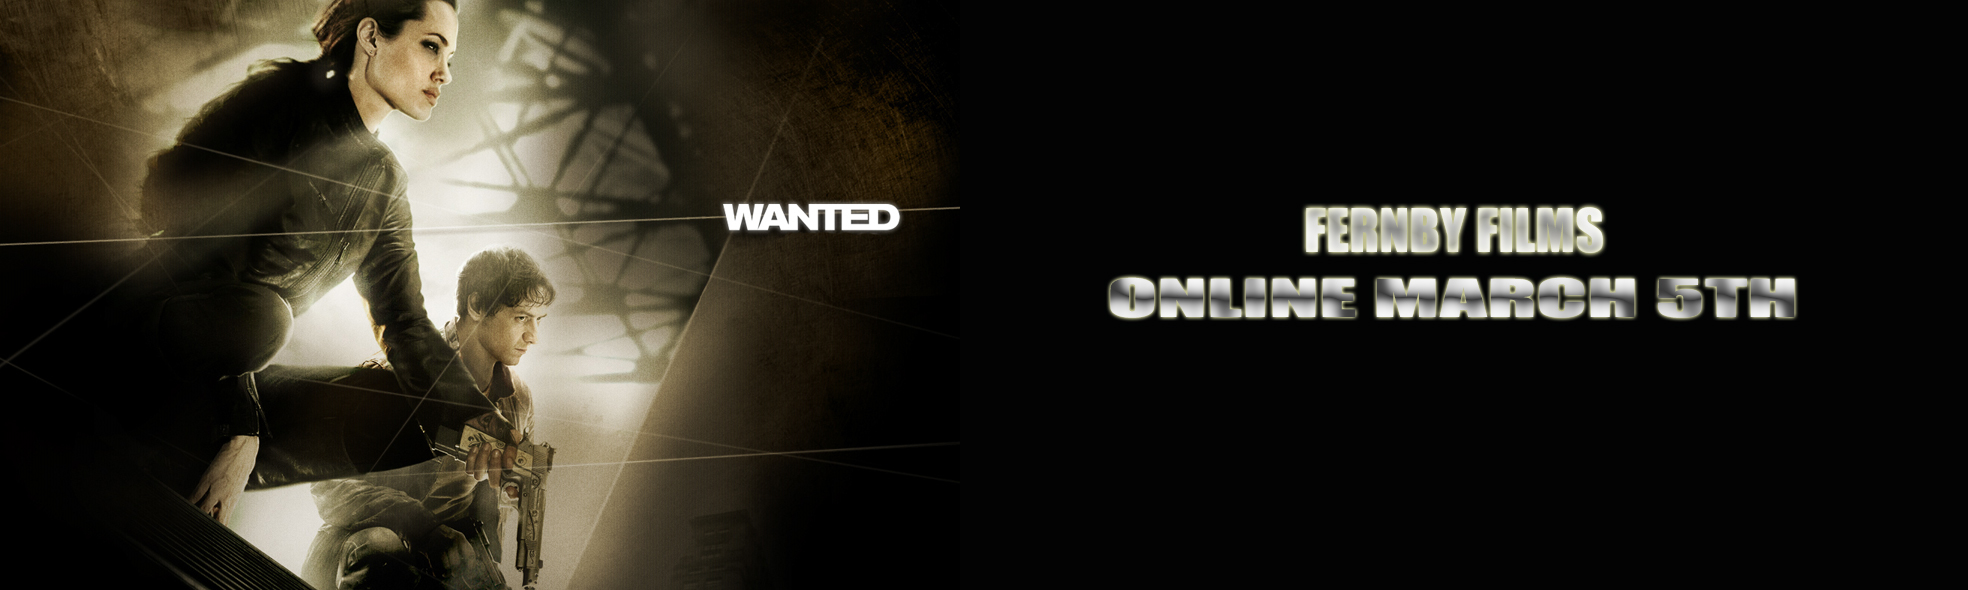 wanted-promo-2